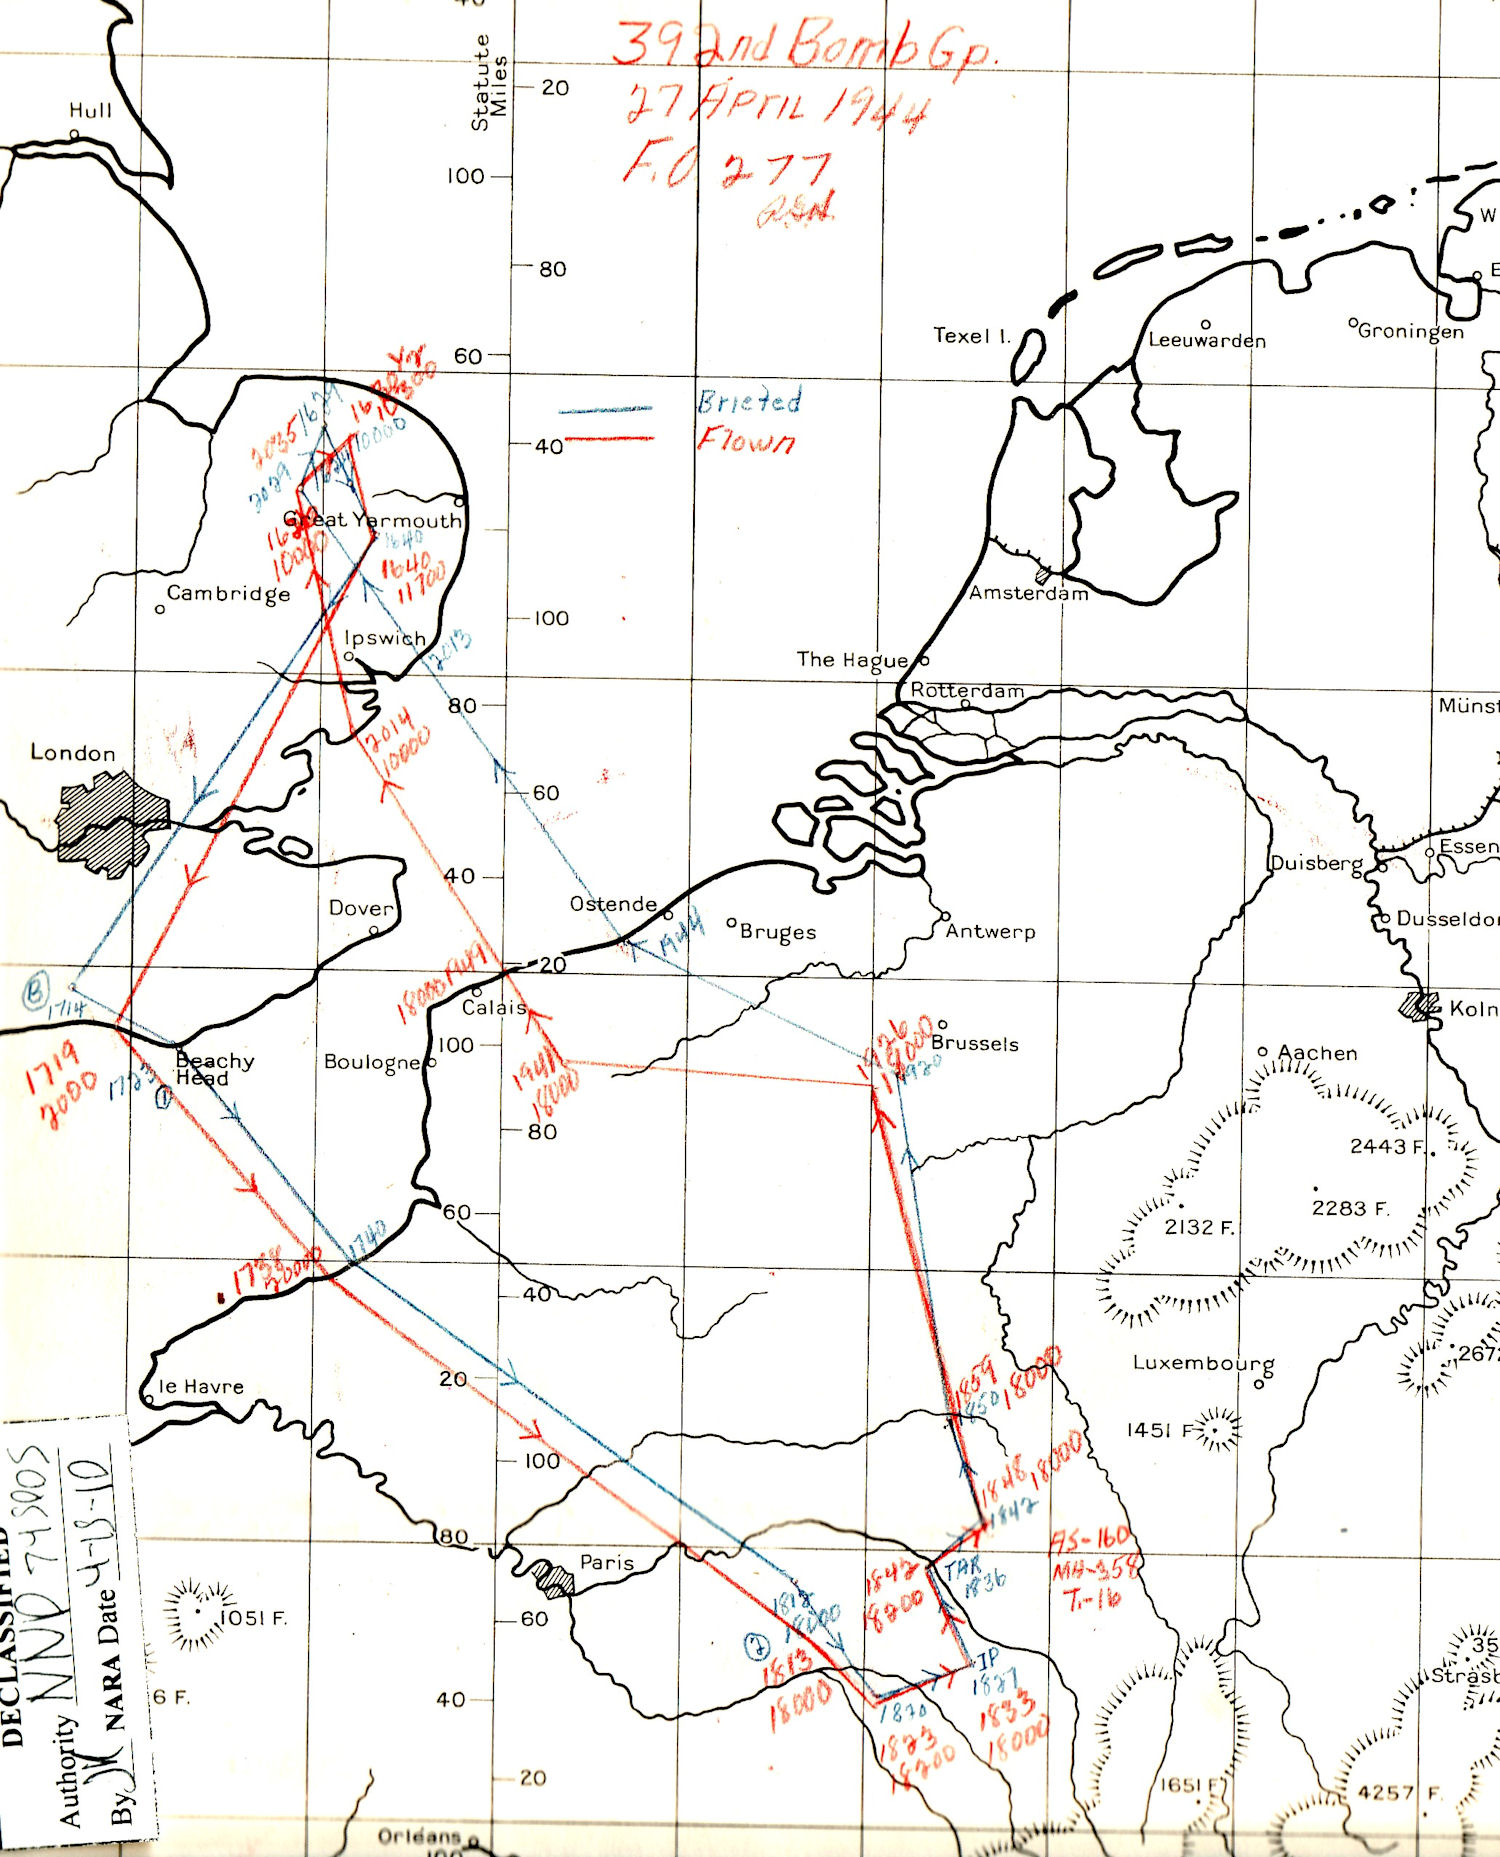 27Apr44 route map